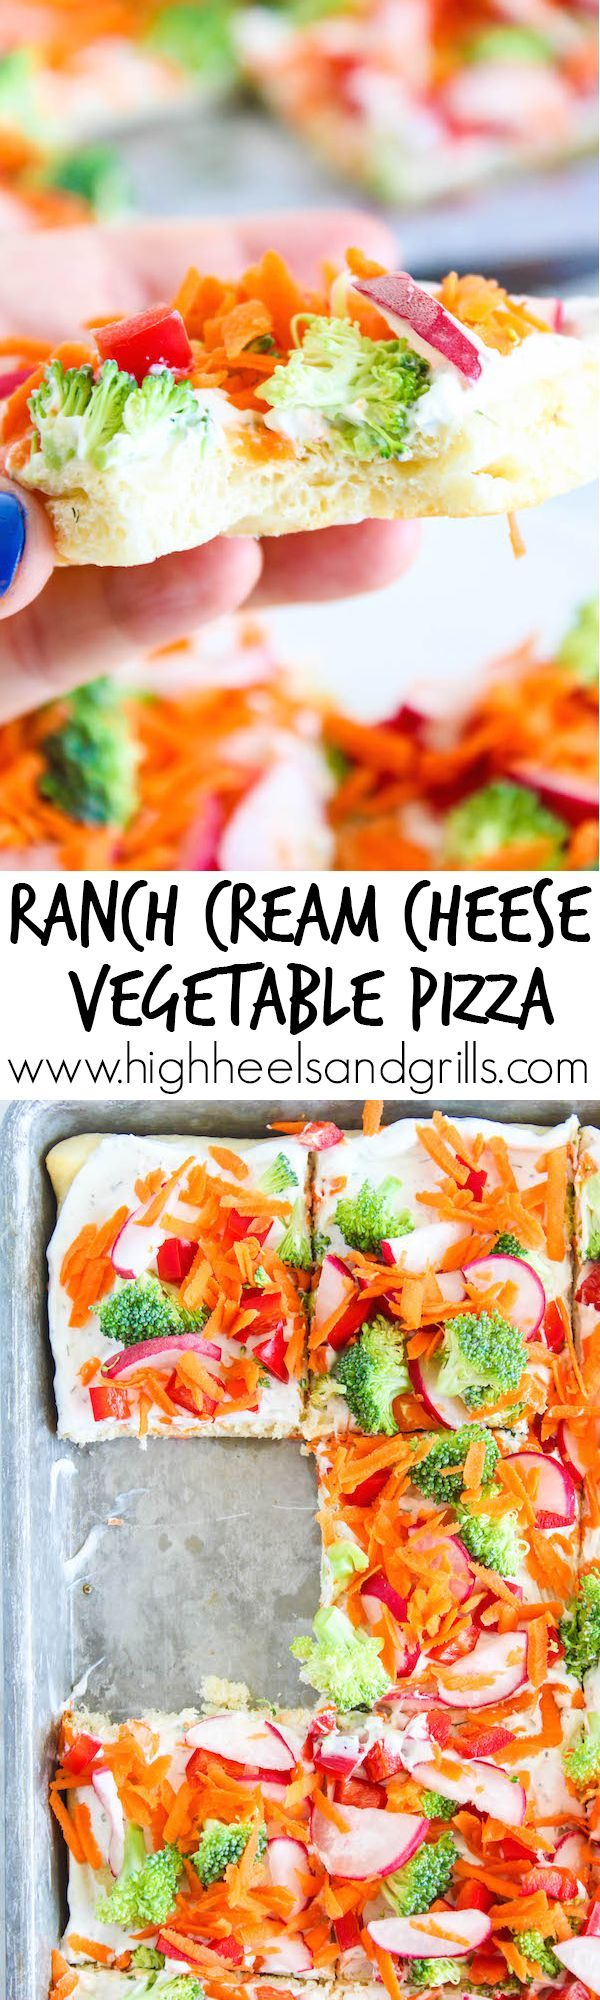 Ranch Cream Cheese Vegetable Pizza - We made this for my daughter's birthday party and everyone loved it! It is so easy to make and tastes amazing! http://www.highheelsandgrills.com/ranch-cream-cheese-vegetable-pizza #NaturallyClean #ad